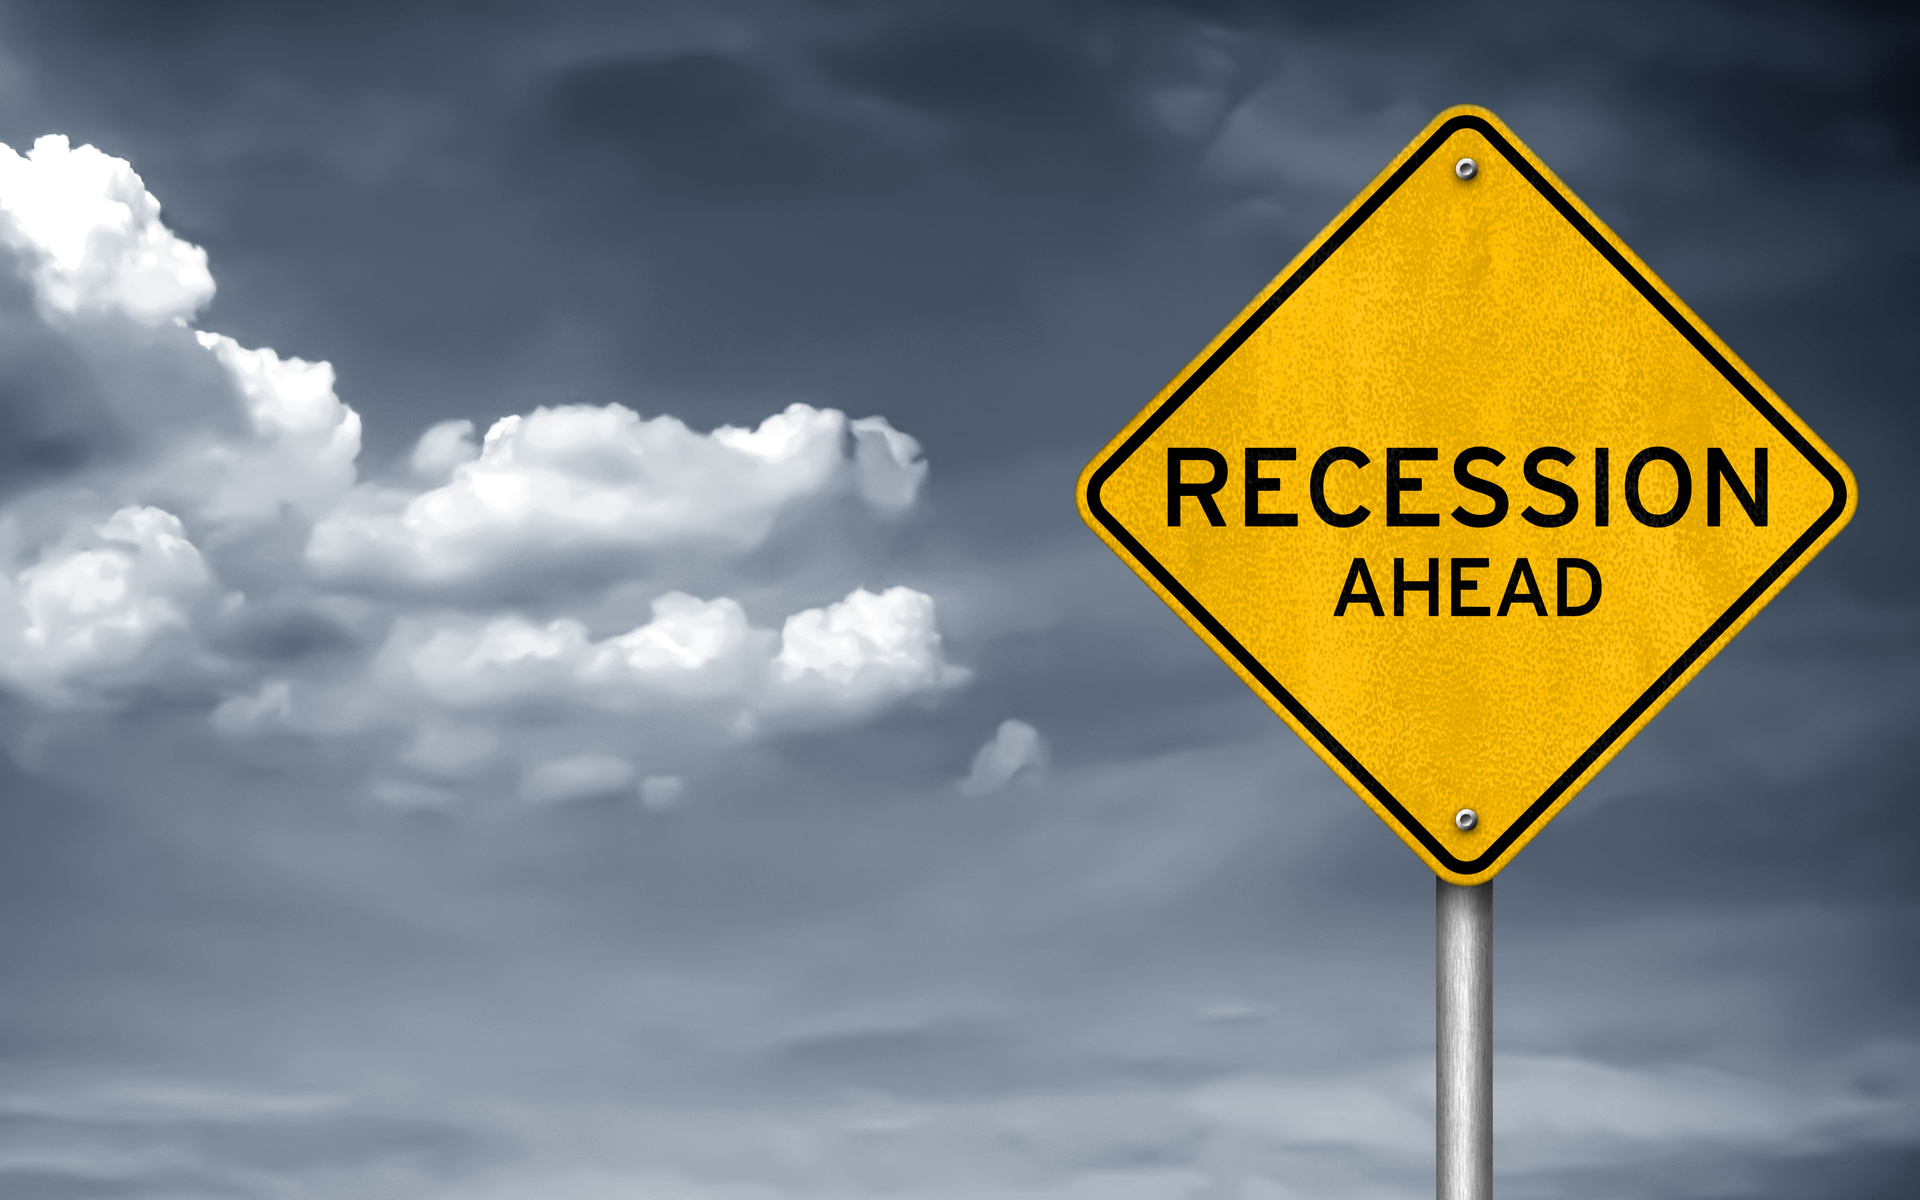 will bitcoin save investors in recession